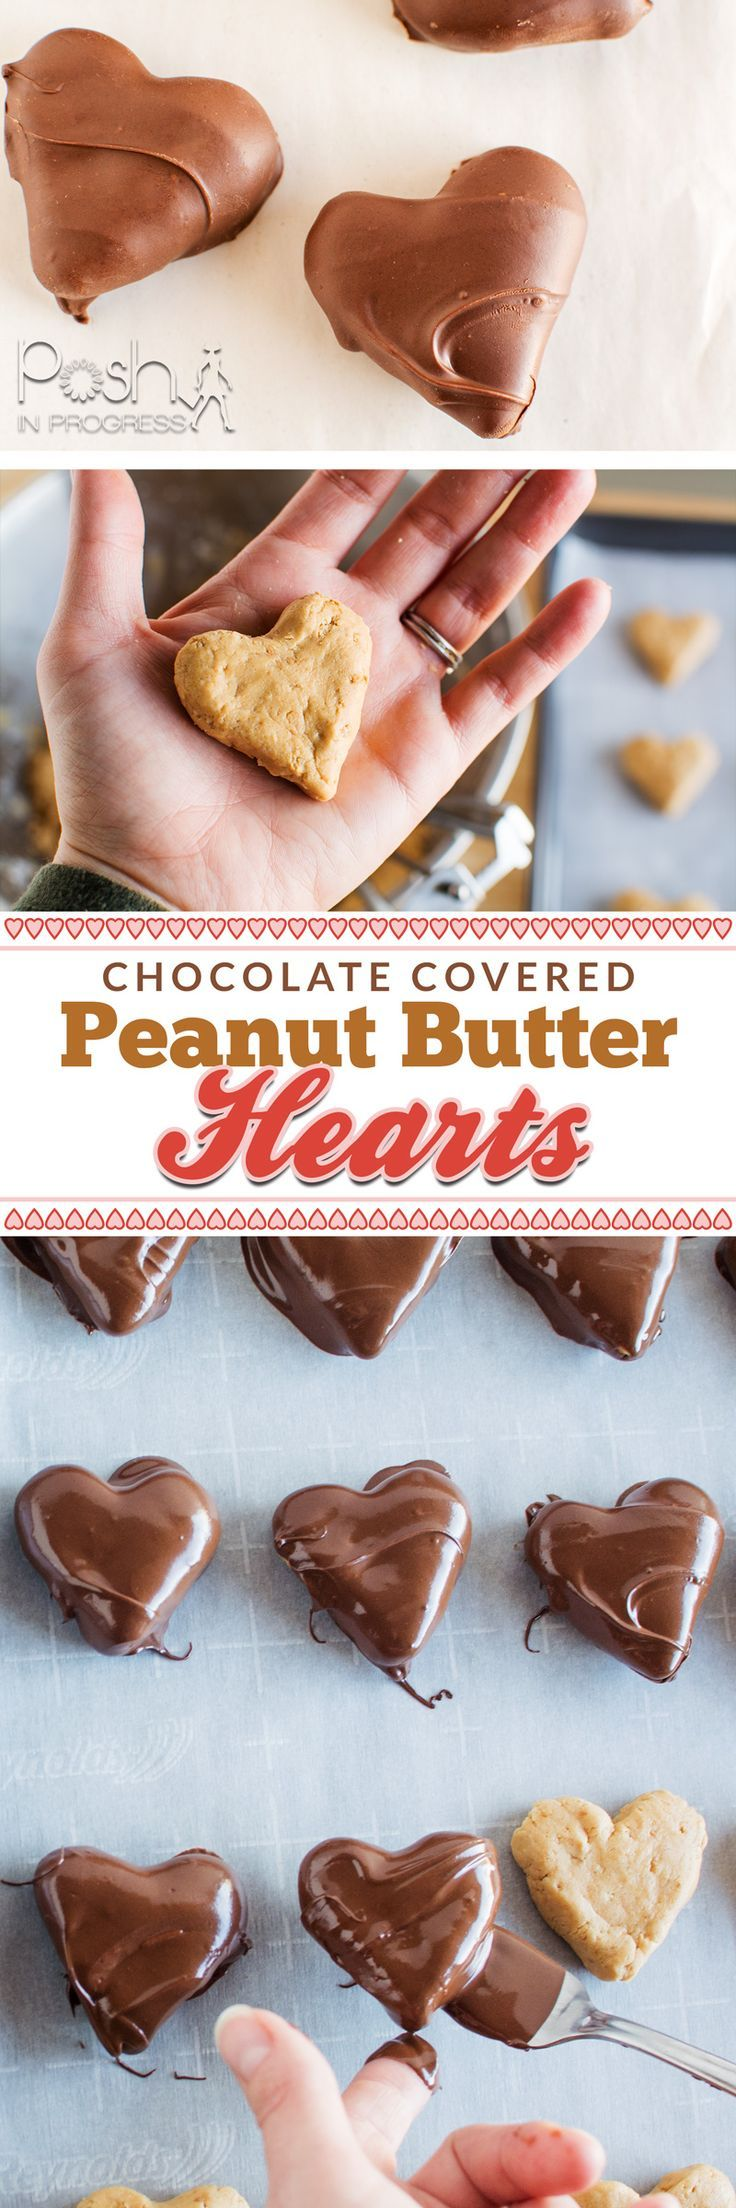 Stacey celebrates National Peanut Butter Day by making chocolate covered peanut butter hearts she created by adapting a peanut butter balls recipe. #nationalpeanutbutterday #peanutbutter #candy #recipe #homemade: